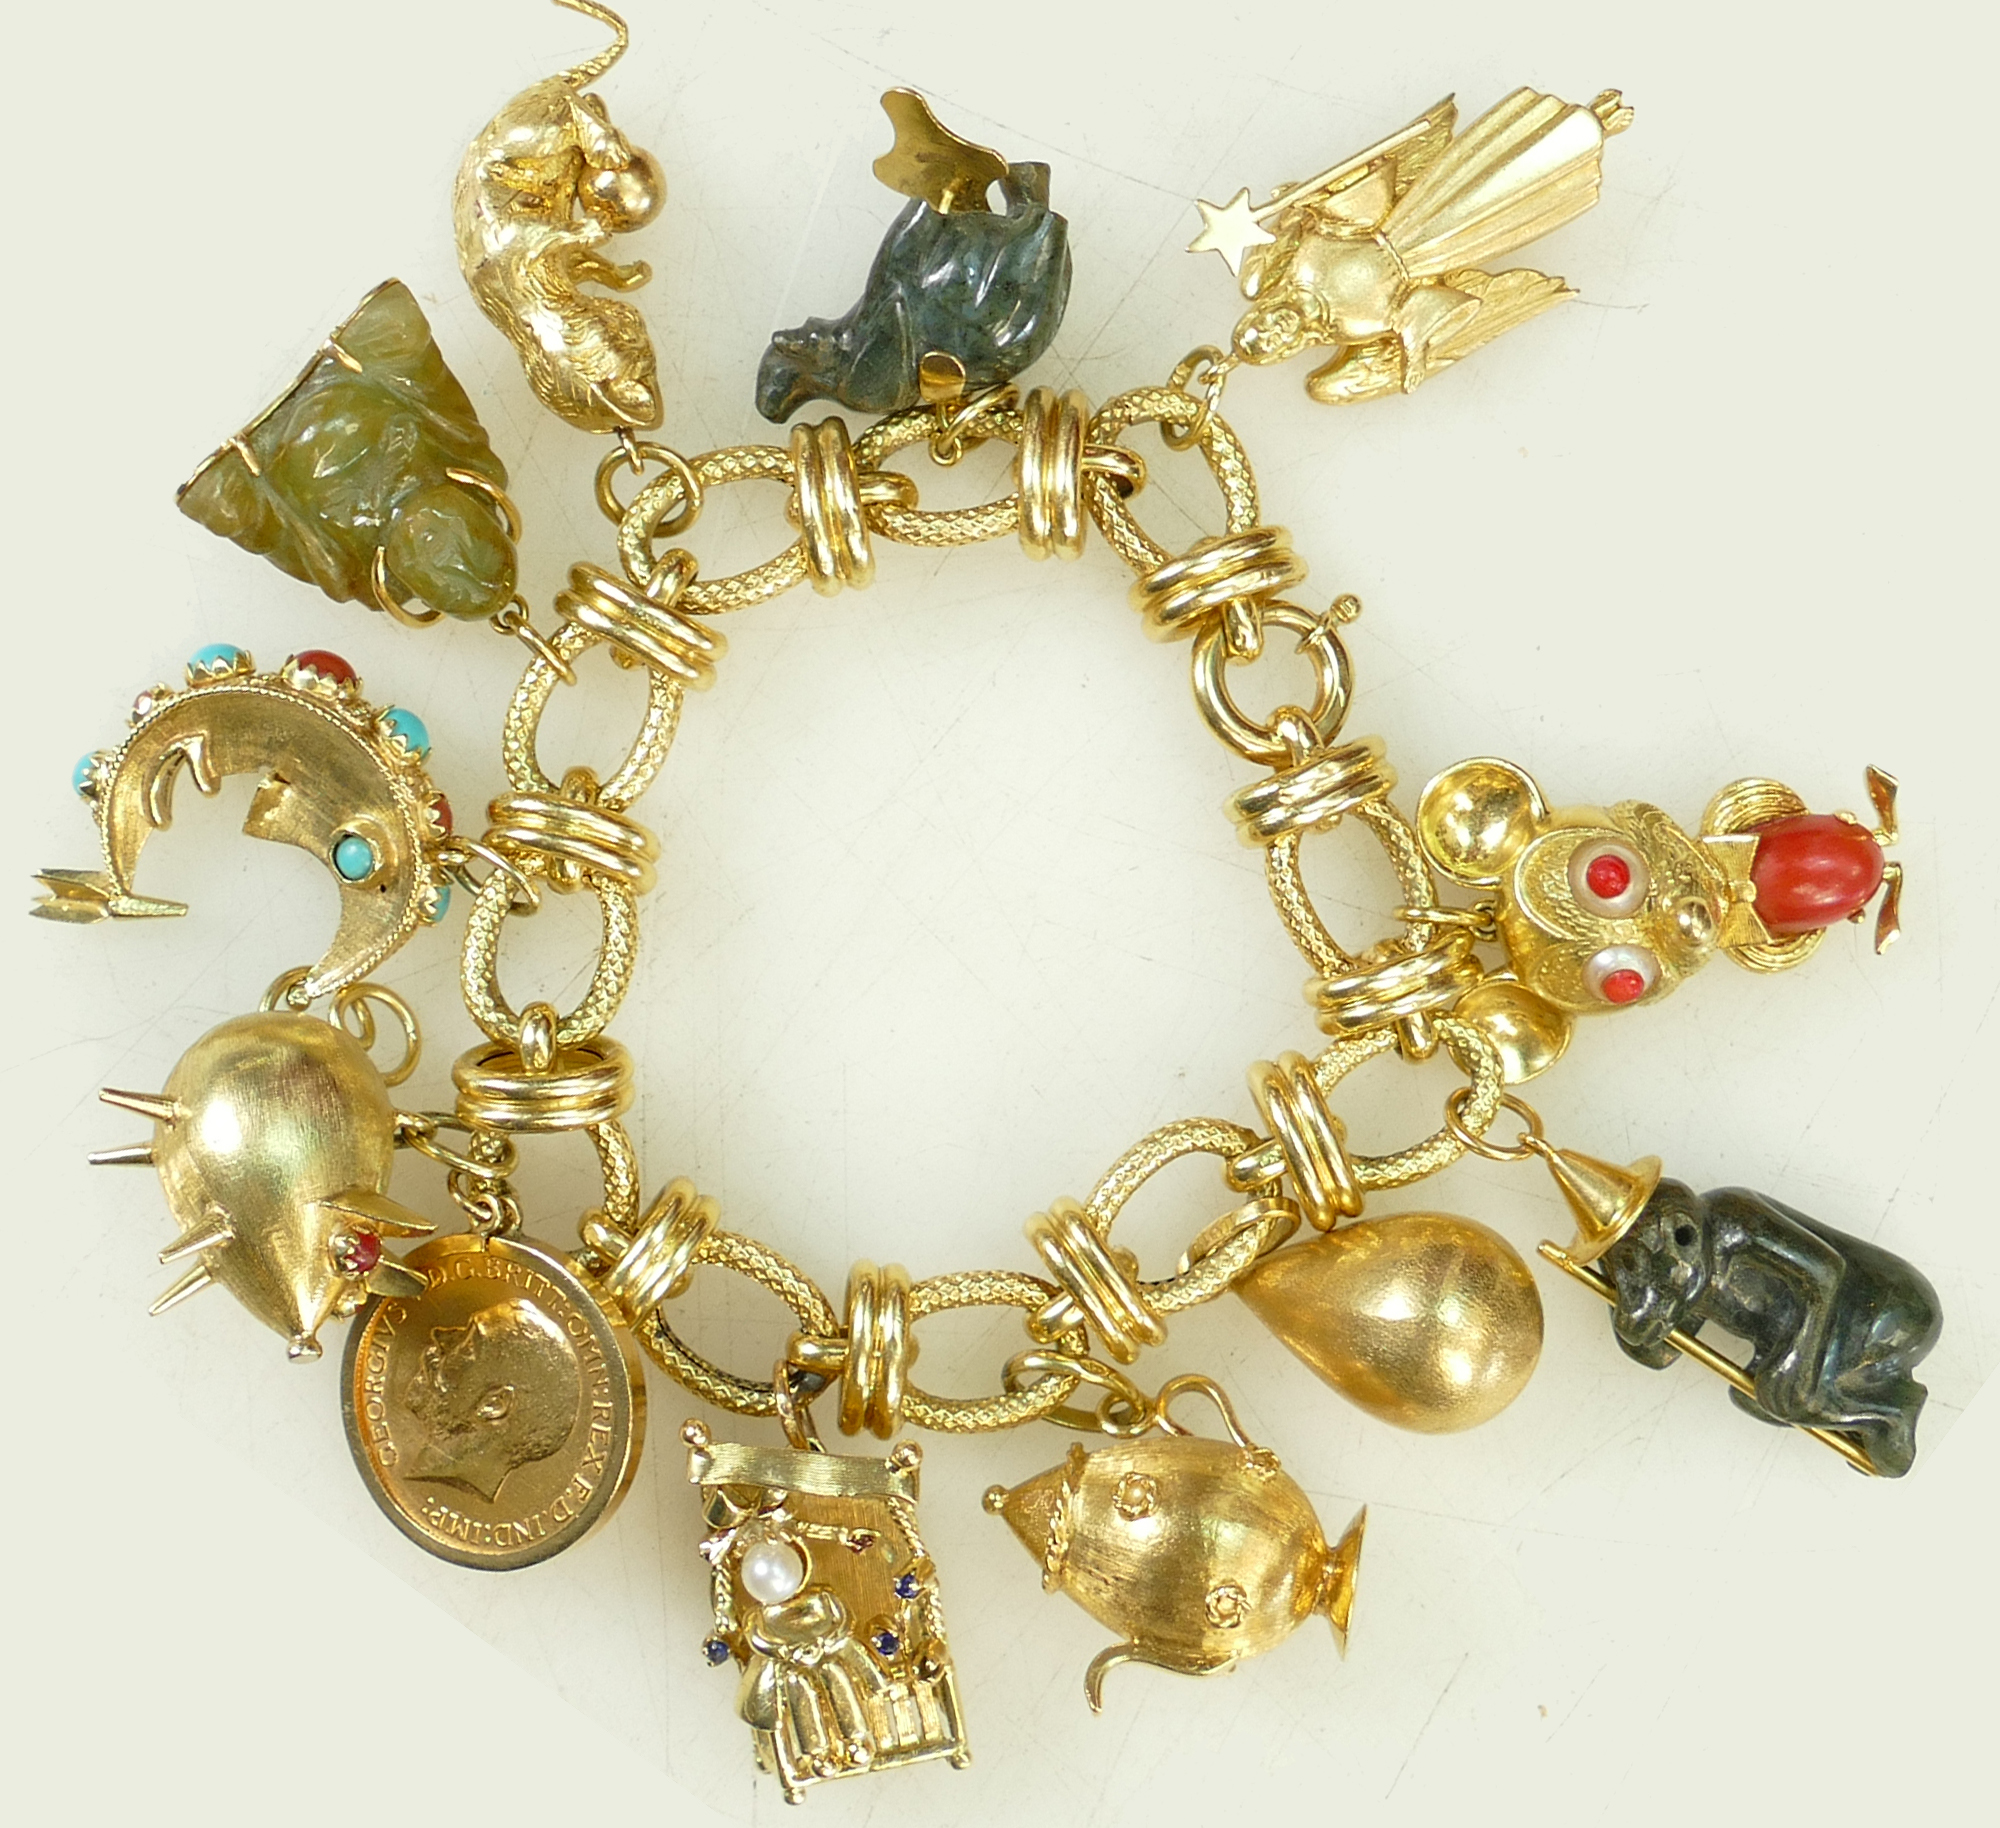 Lot 1923 18ct gold charm bracelet with 12 good quality charms